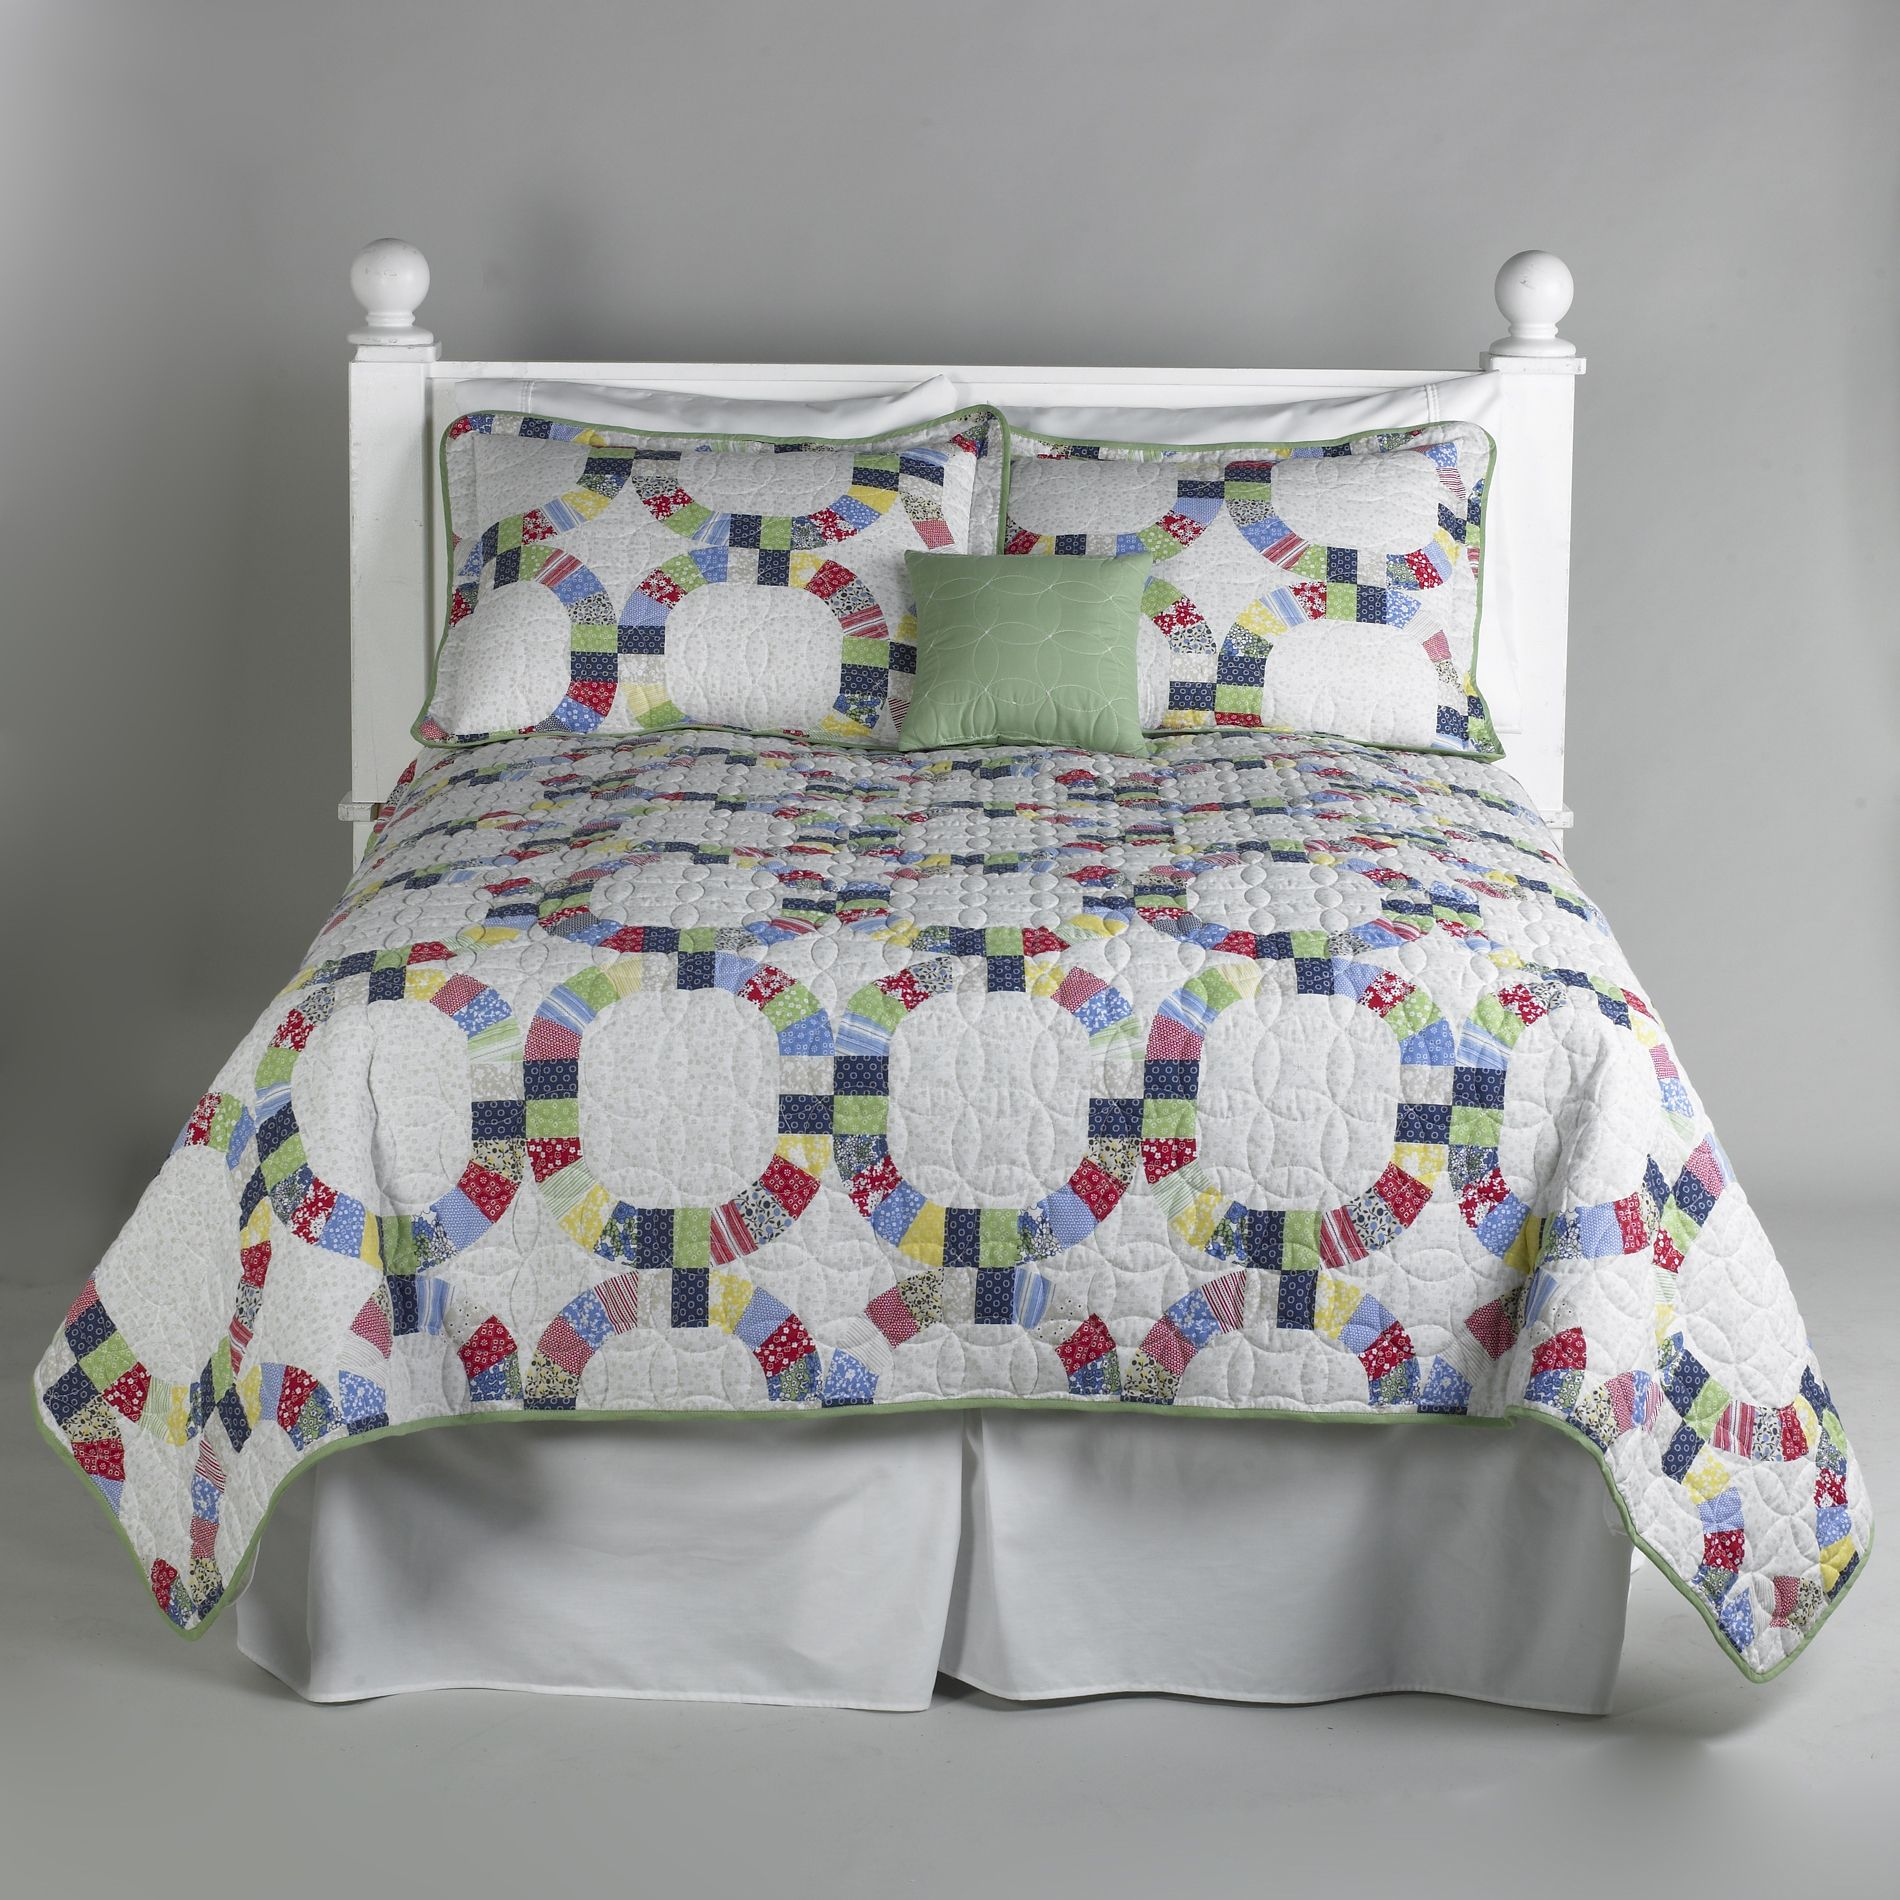 Heirloom Quilt 5 Piece Bedding Set